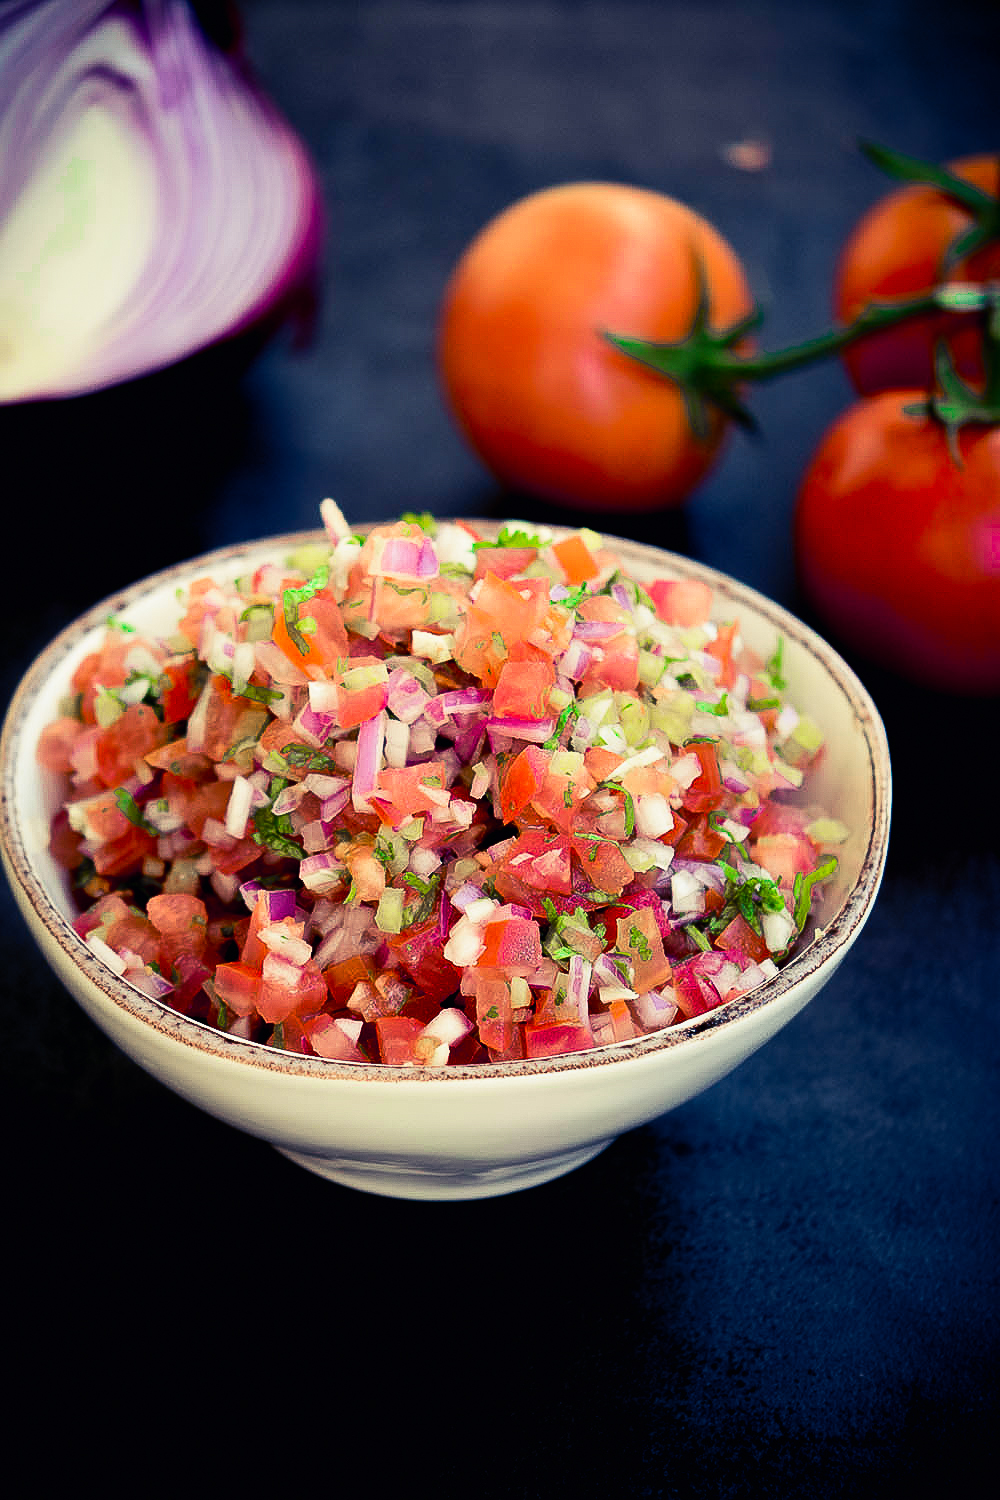 Pico de gallo is just one many easy Cinco de Mayo recipes we're sharing and it has only 5 ingredients.